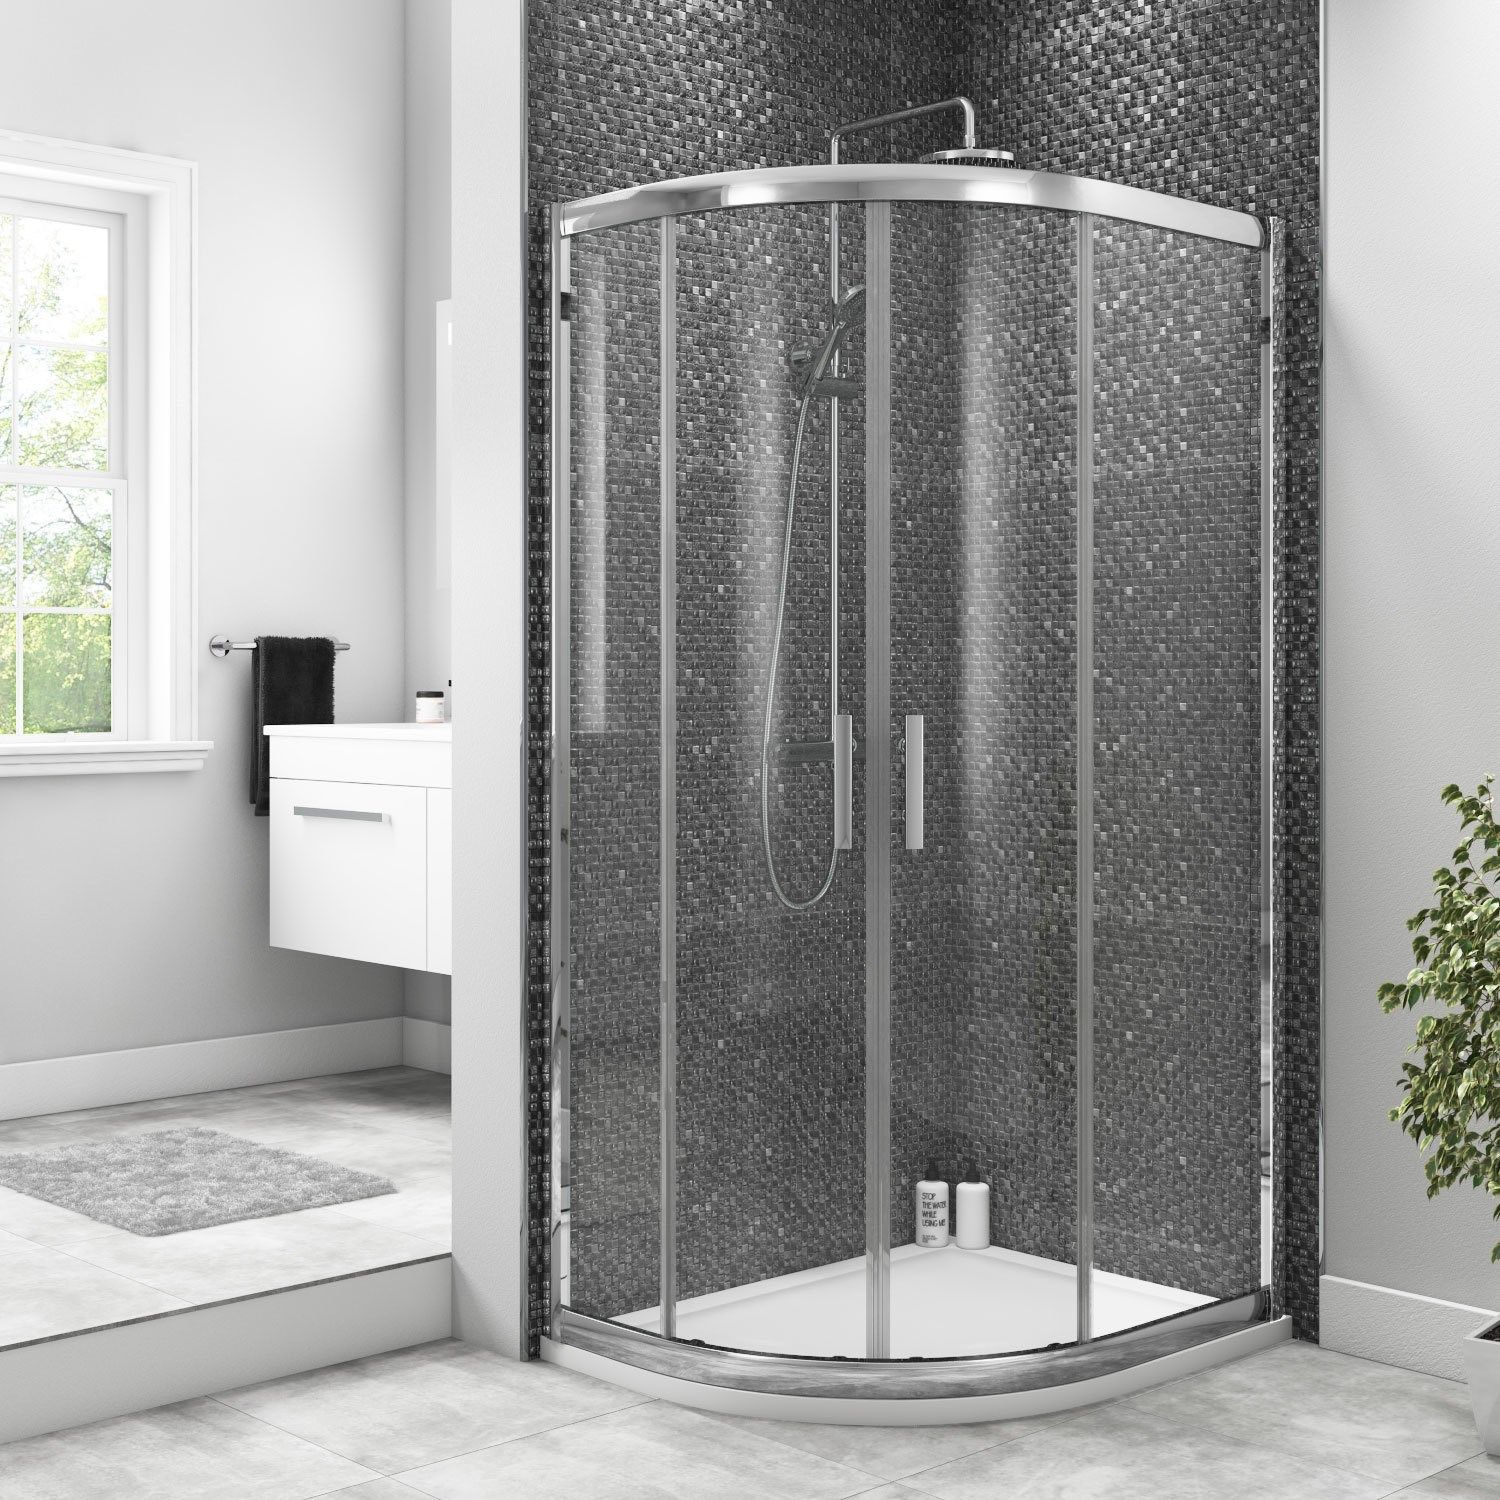 Offset Reversible Quadrant Shower Enclosure With Twin Sliding Door 1200 X 800mm Soak Up Bathroom Quadrant Shower Enclosures Shower Enclosure Quadrant